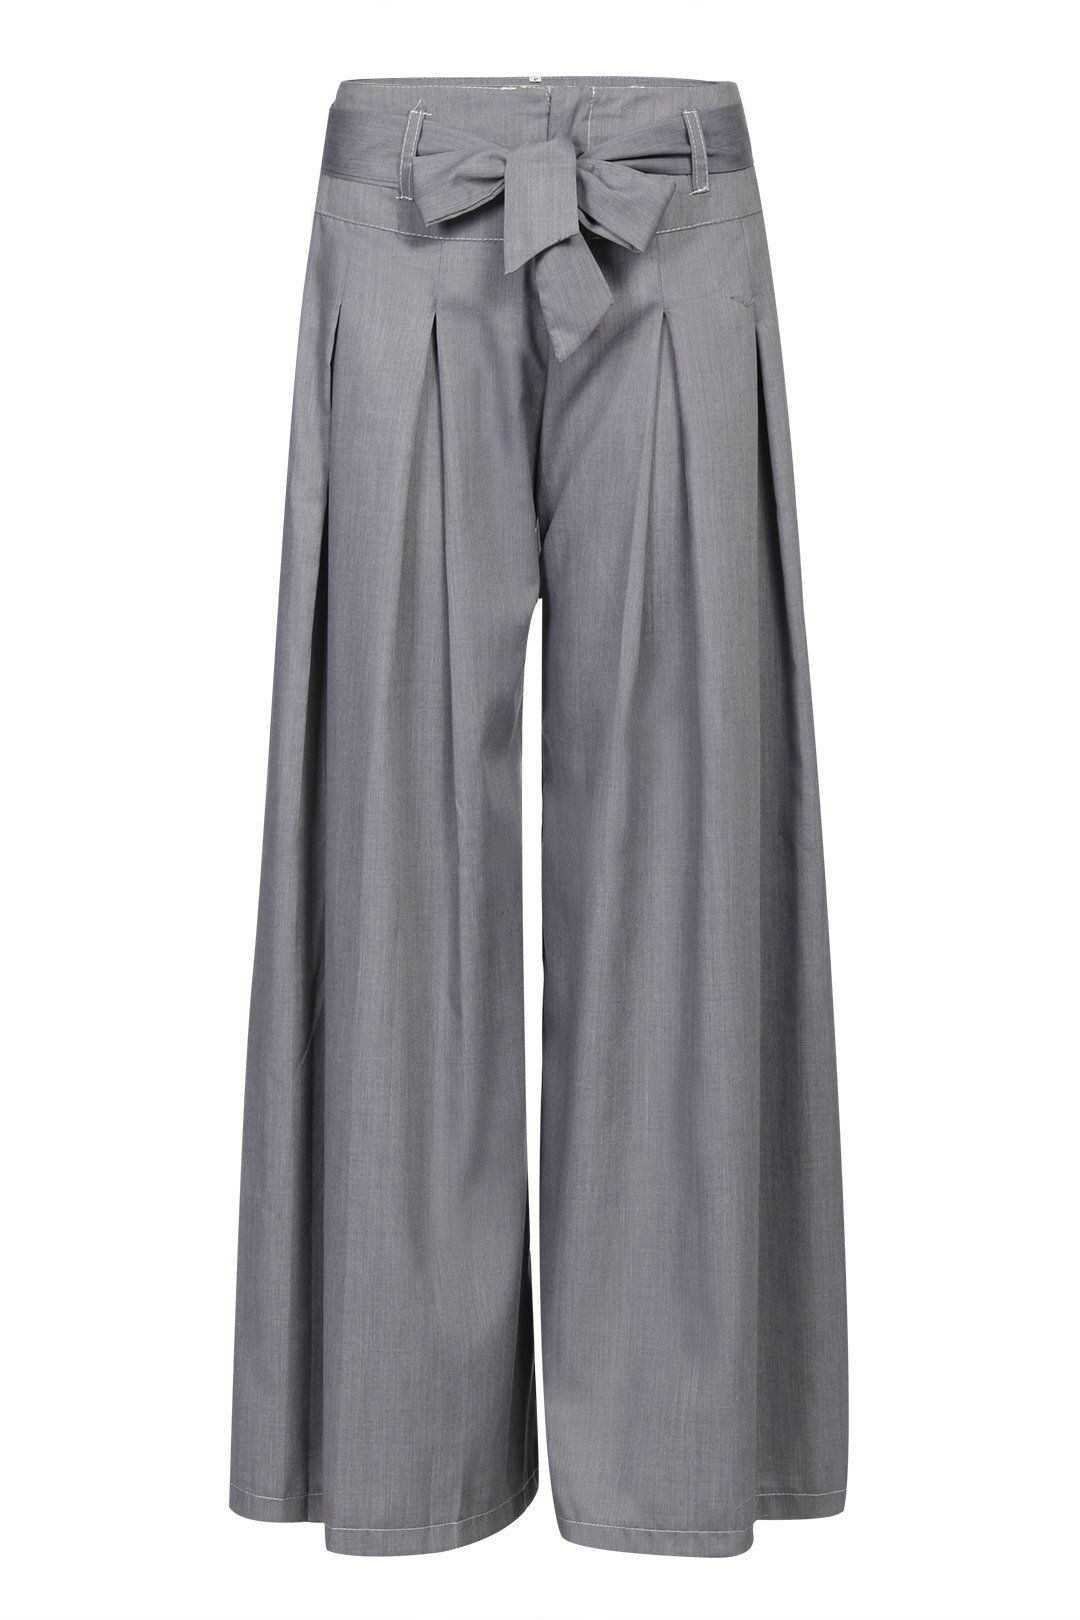 f8d1b2190c860 Grey Wide Leg Loose Trousers with Belt - US$25.95 in 2019 | Fall ...